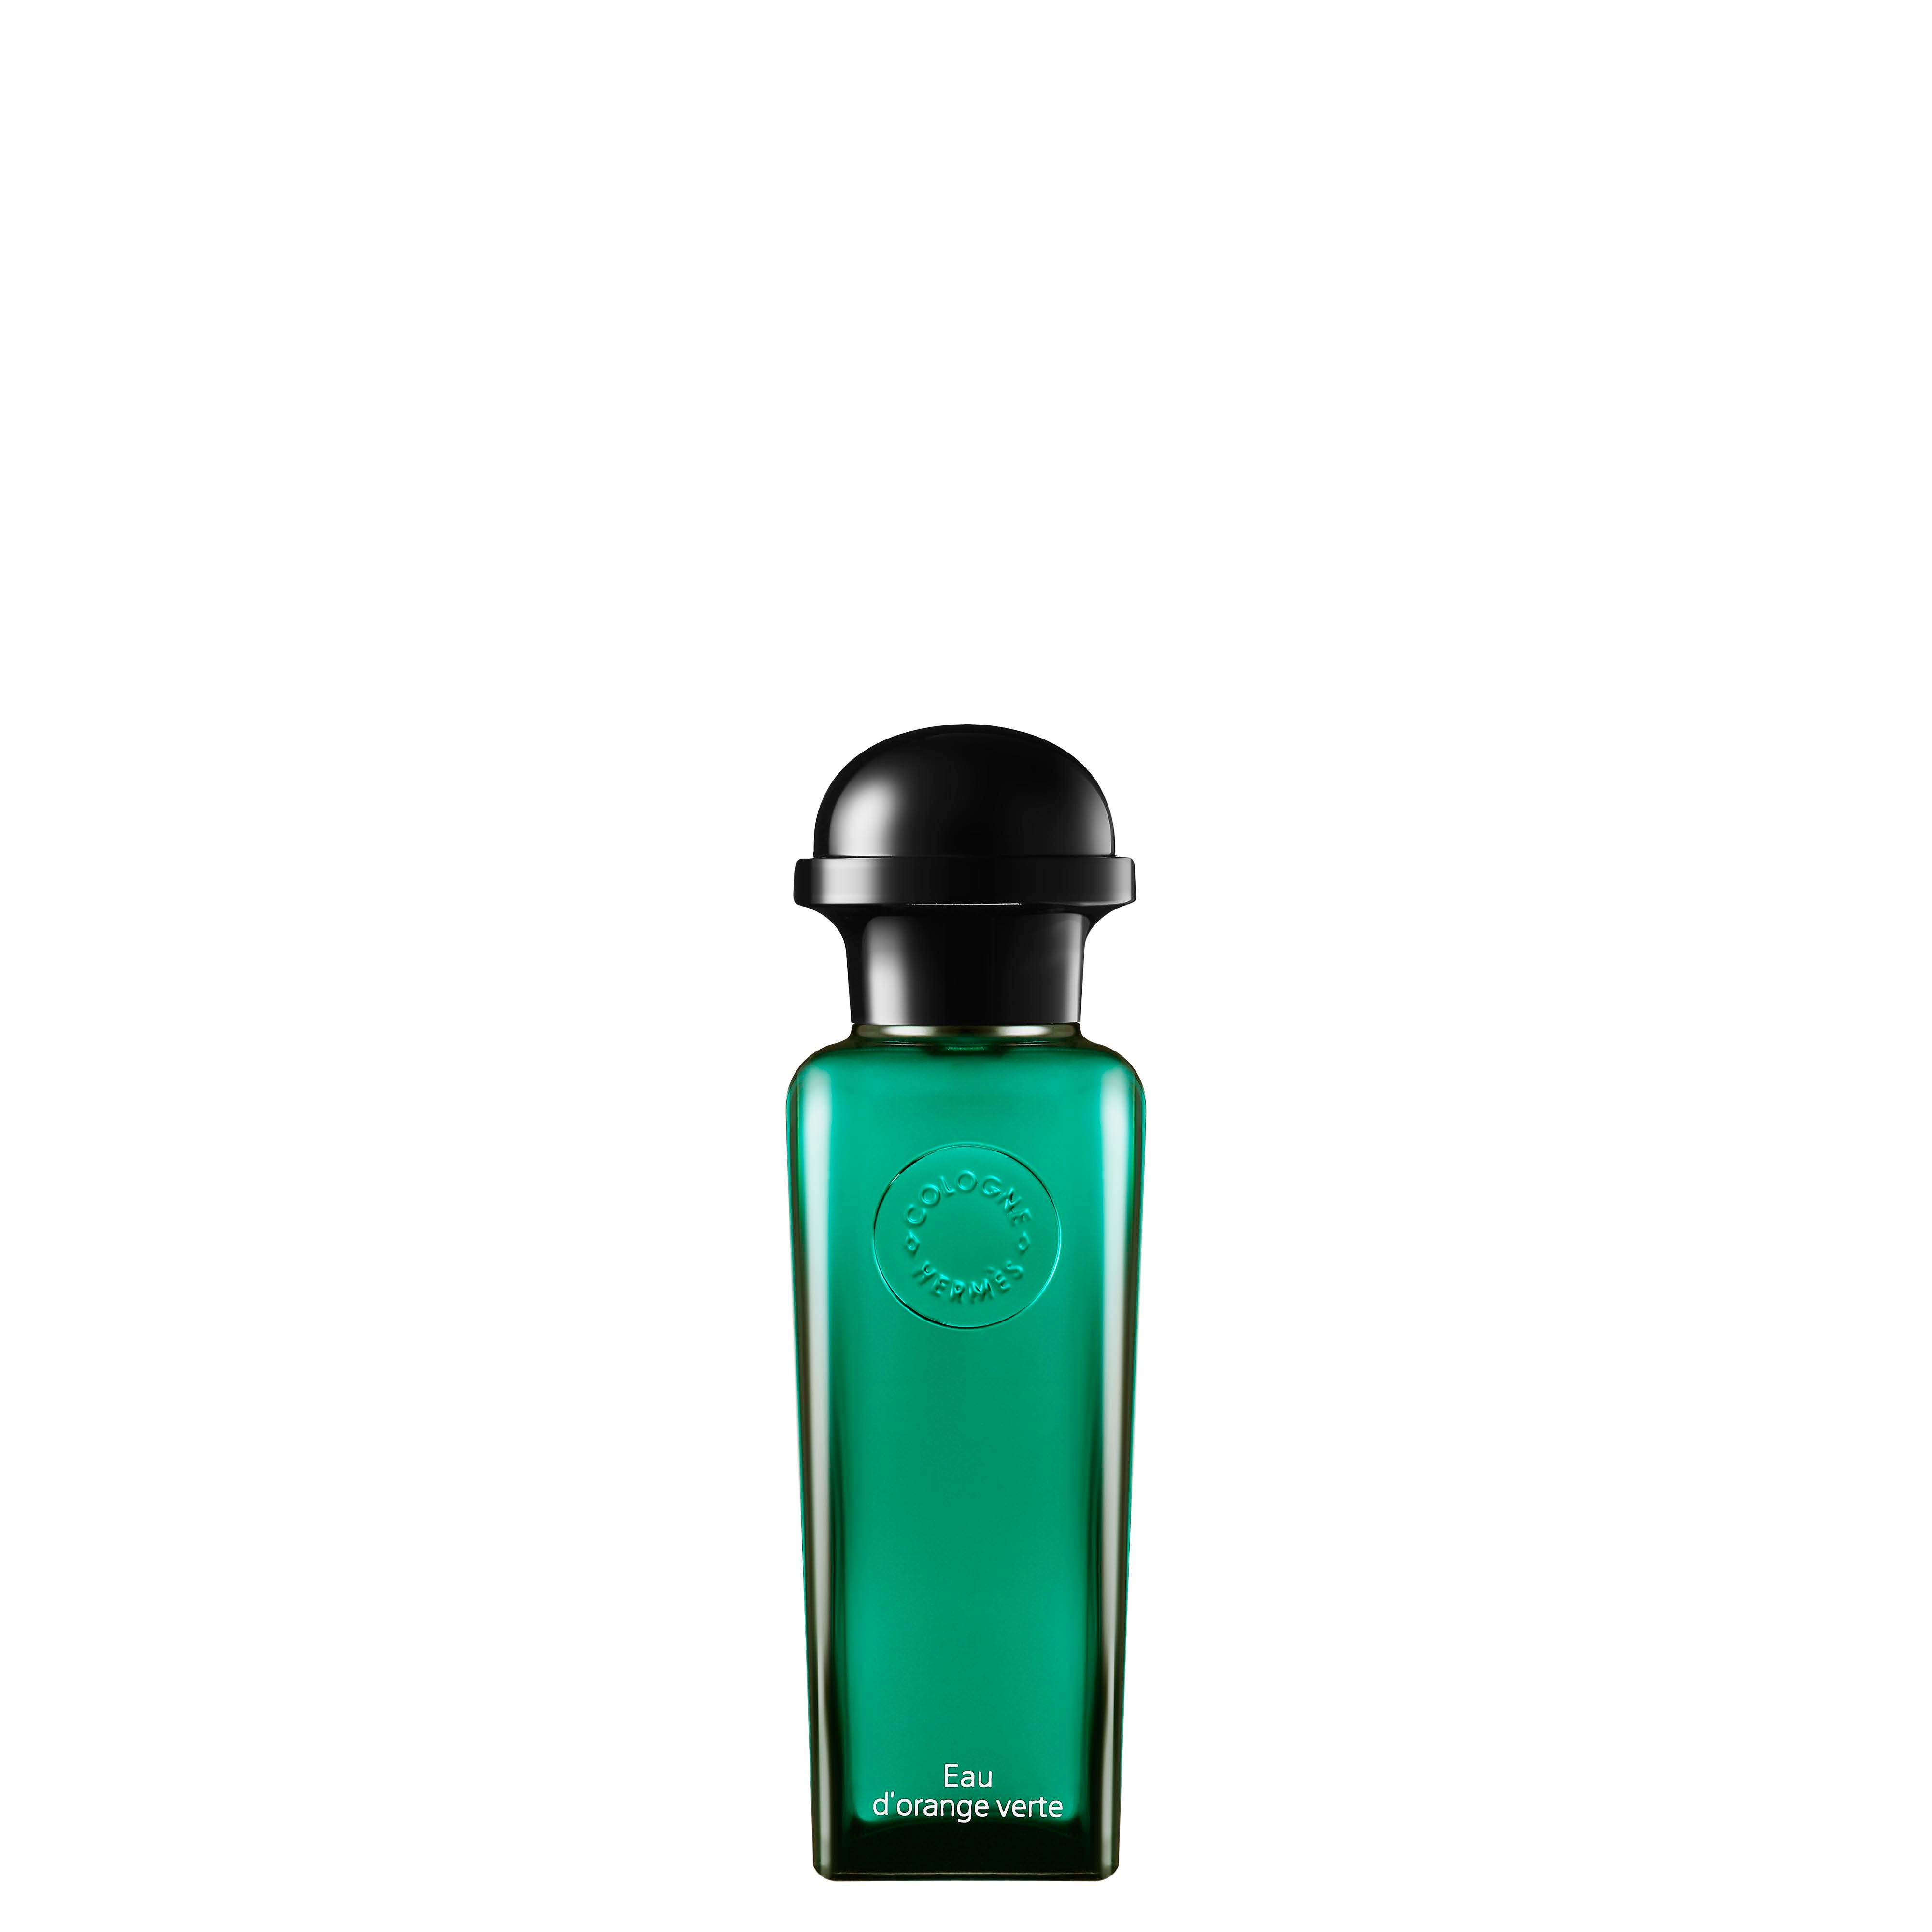 Eau d`Orange Verte Eau de Cologne 50ml